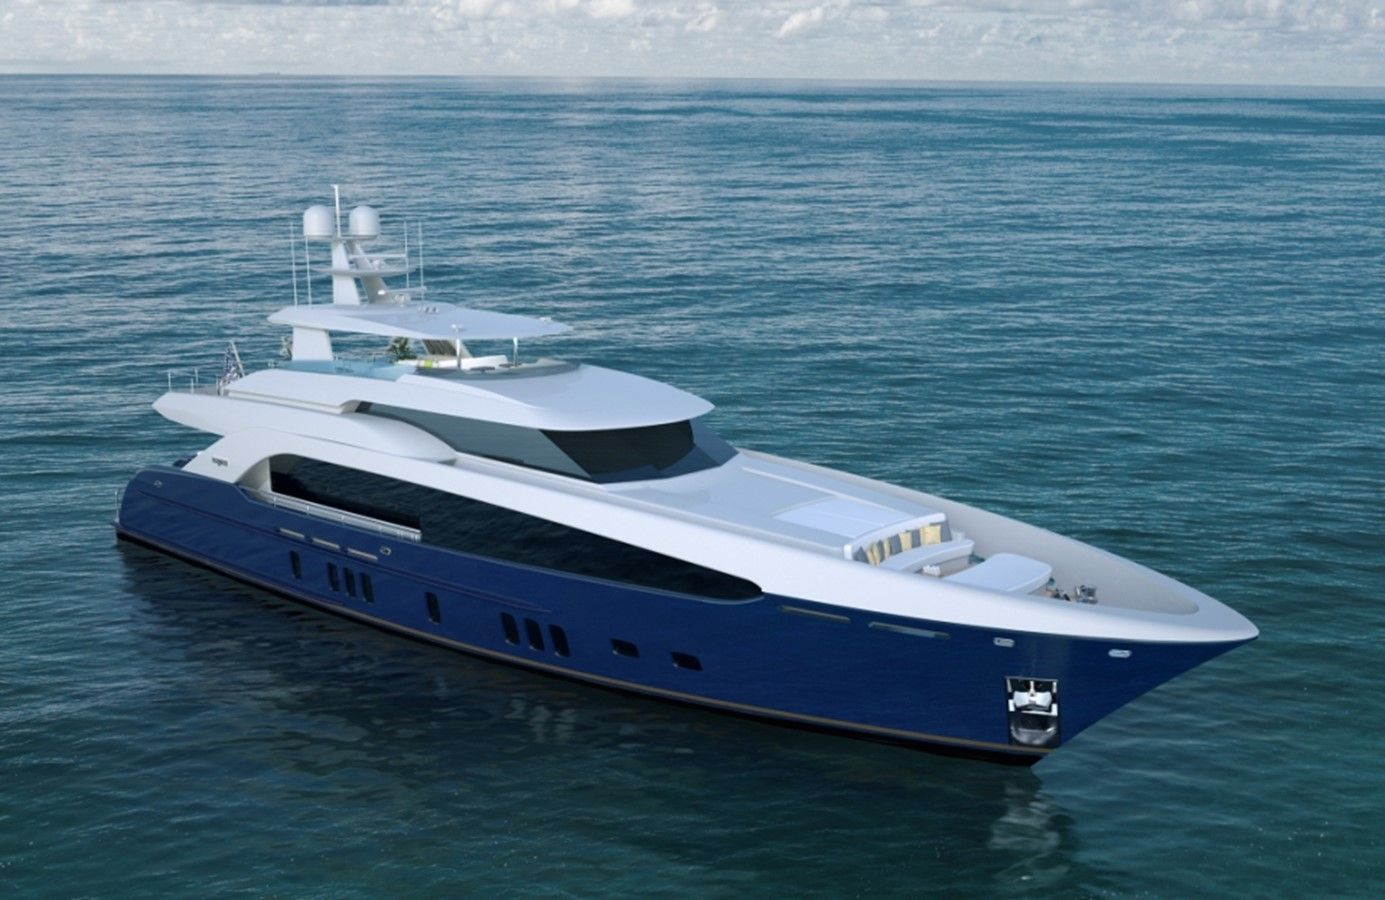 2020 BURGER Burger 115 Raised Pilothouse For Sale